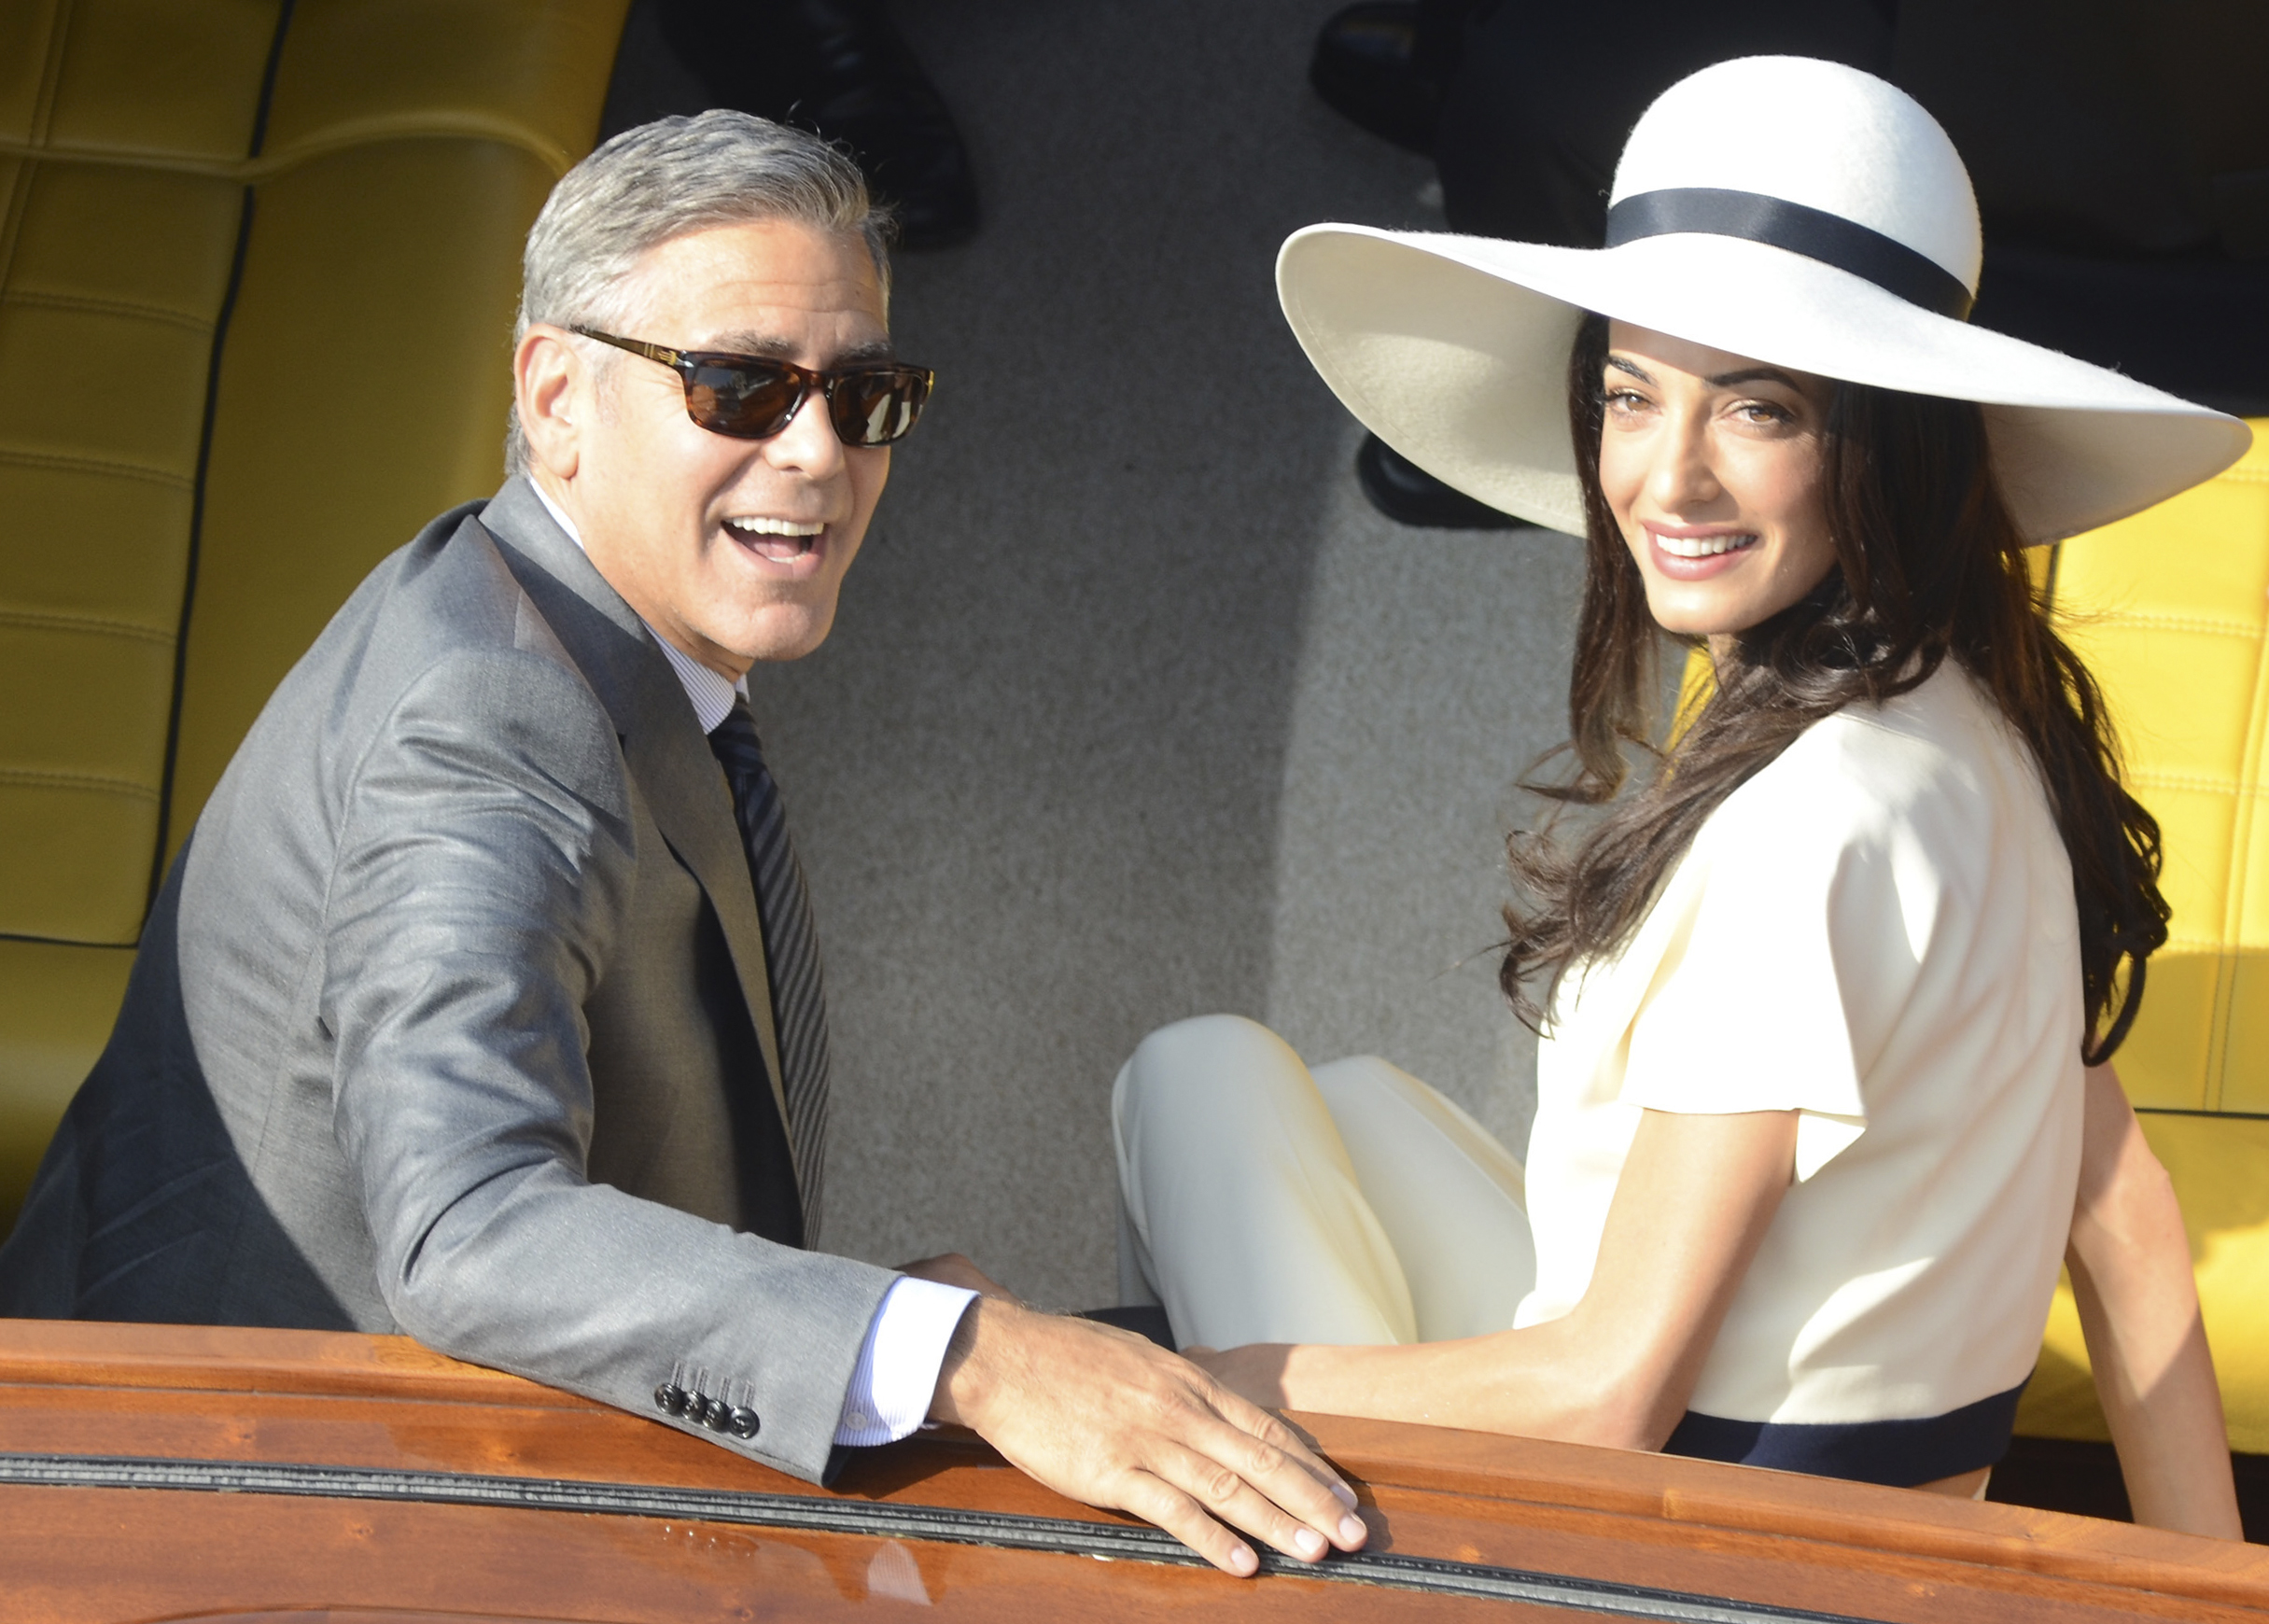 George Clooney and his wife Amal Alamuddin leave the city hall after their civil marriage ceremony in Venice, Italy,